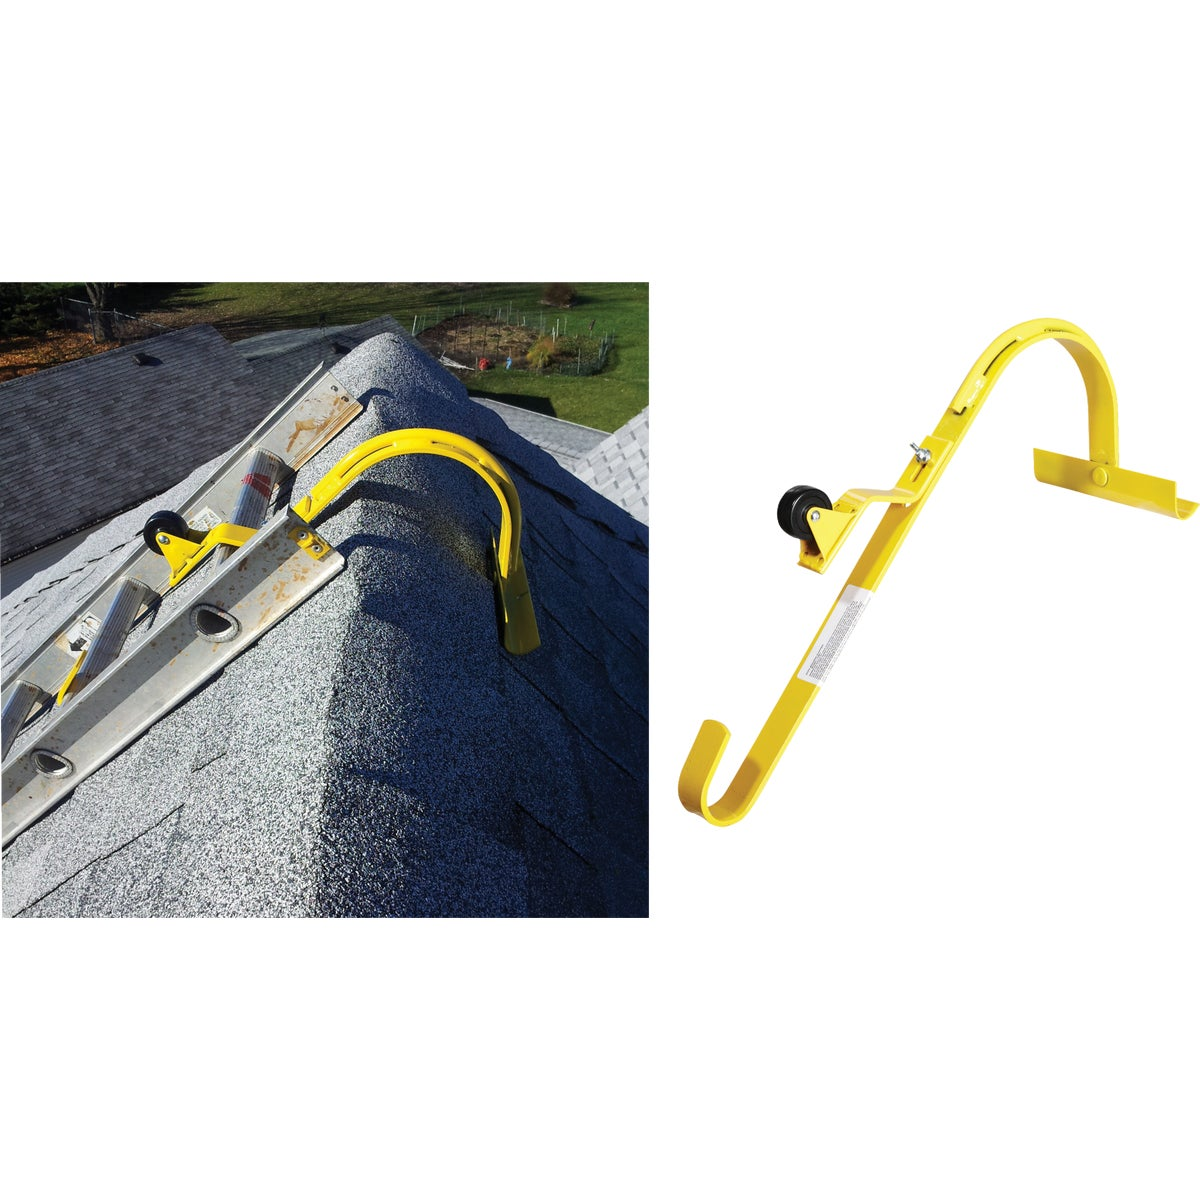 ROOF RIDGE LADDER HOOK